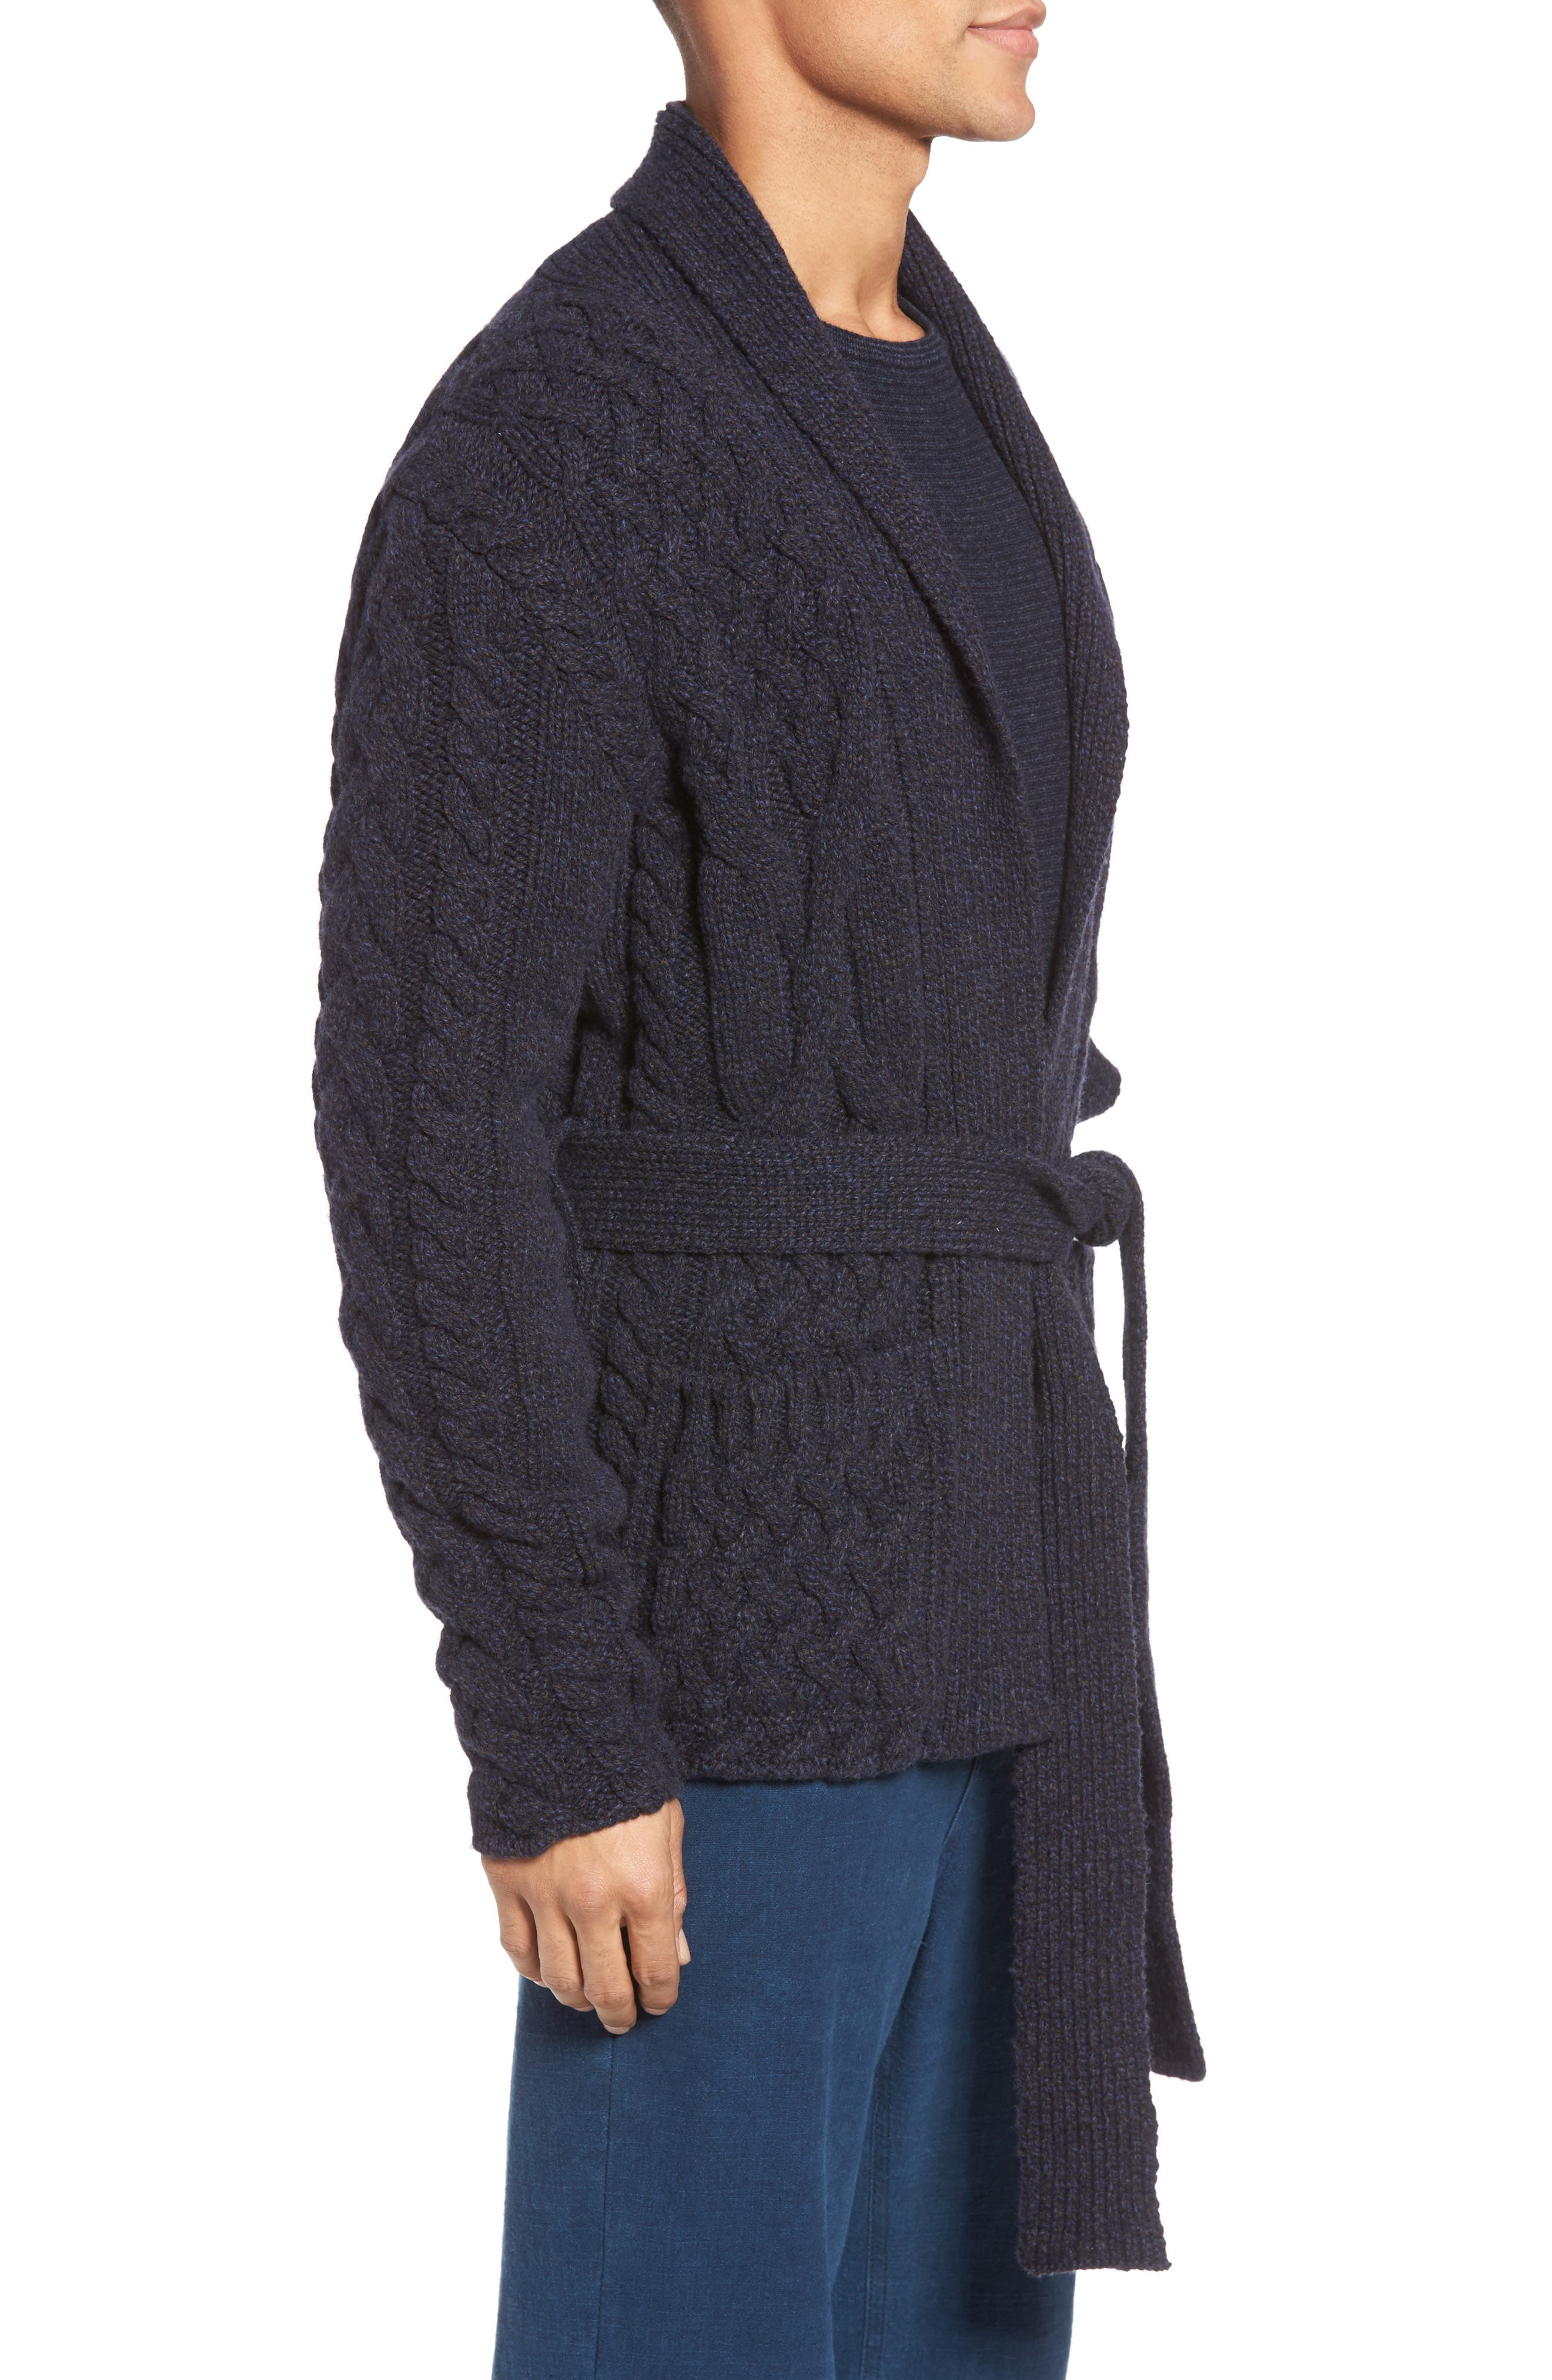 EIDOS,                             Napoli Cable Knit Wool Cardigan,                             Alternate thumbnail 3, color,                             405